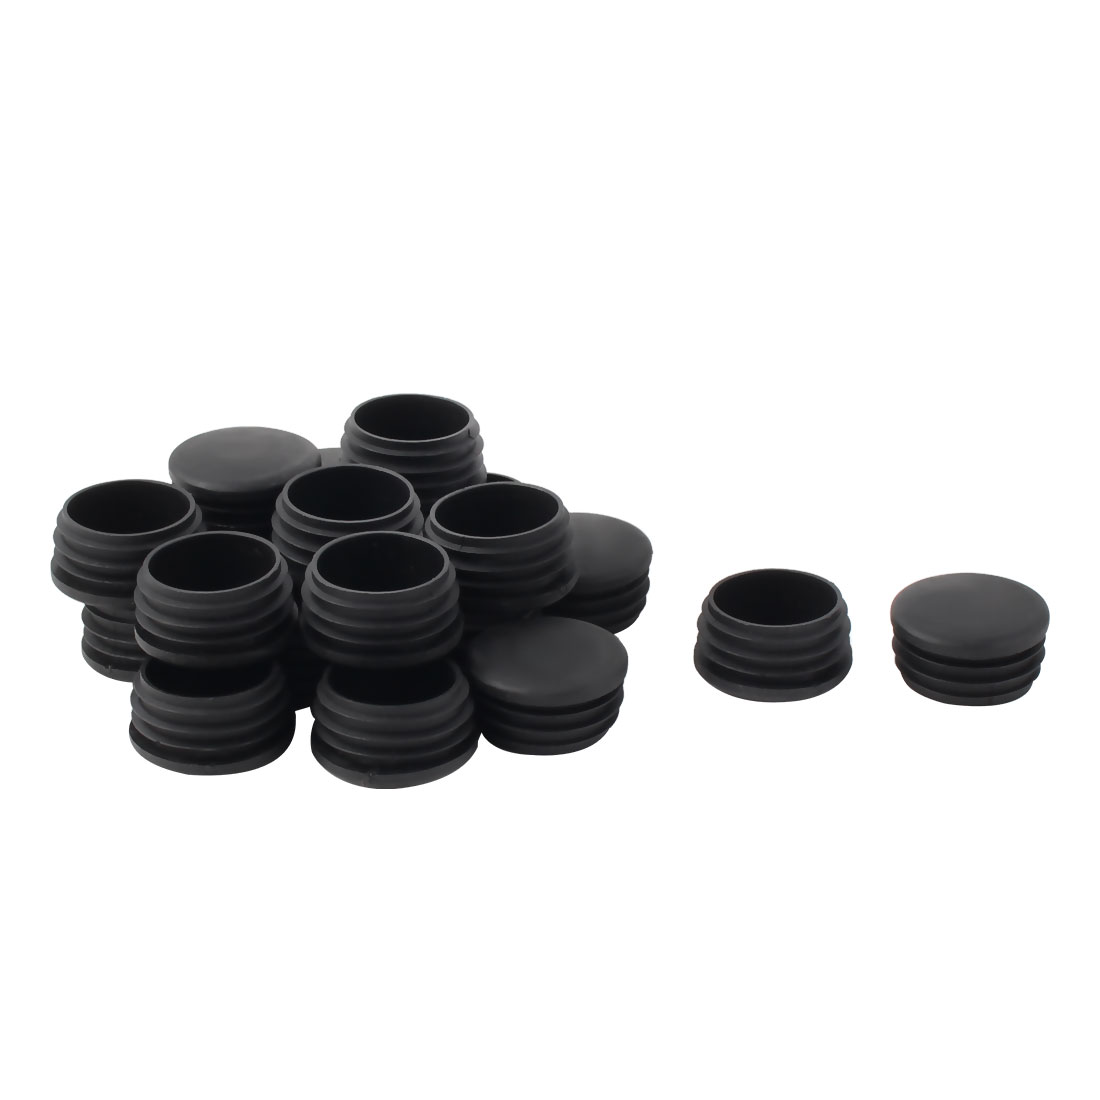 Plastic Round Tube Insert Blanking End Protectors Caps Black 38mm 20 PCS